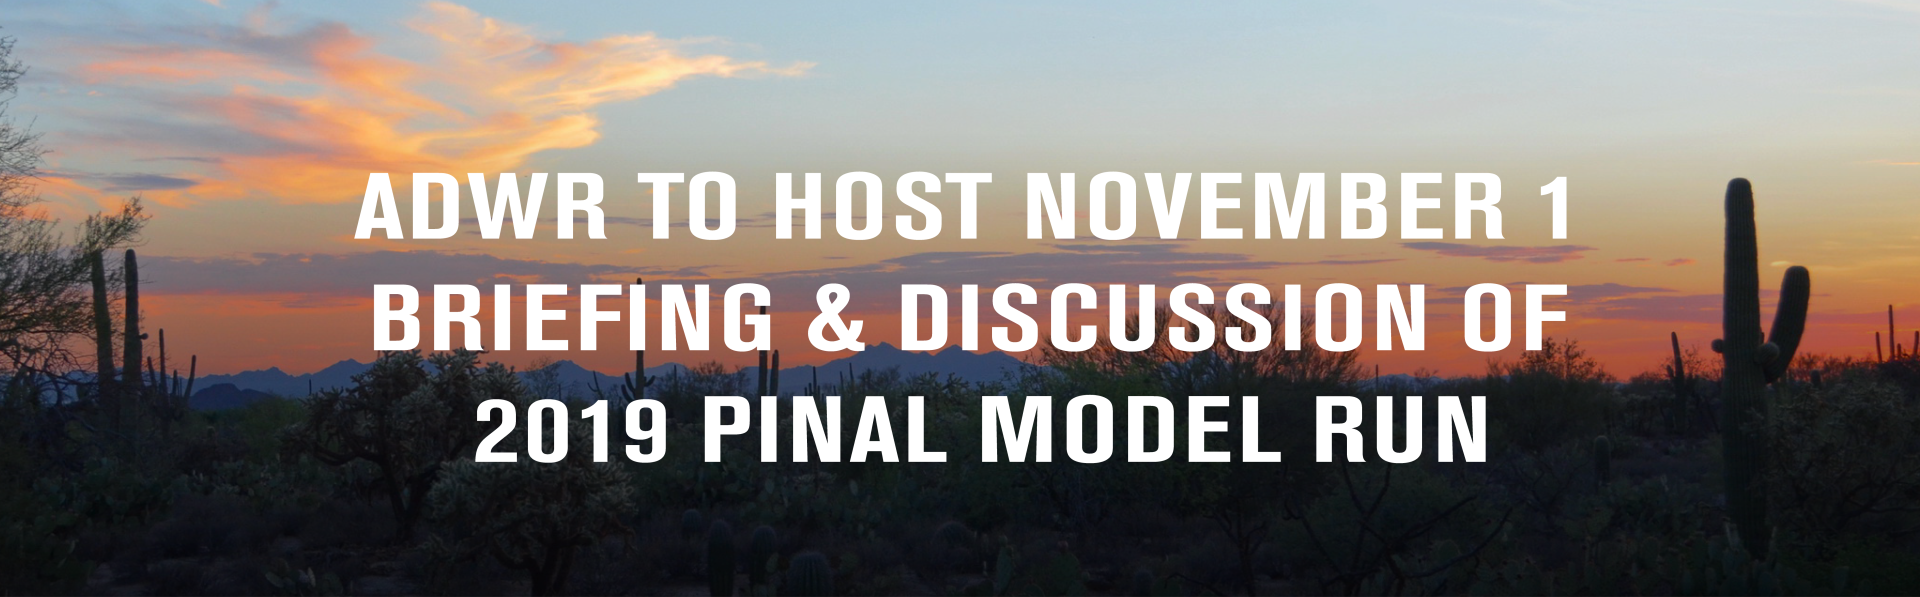 ADWR Briefing and Discussion of 2019 Pinal Model Run